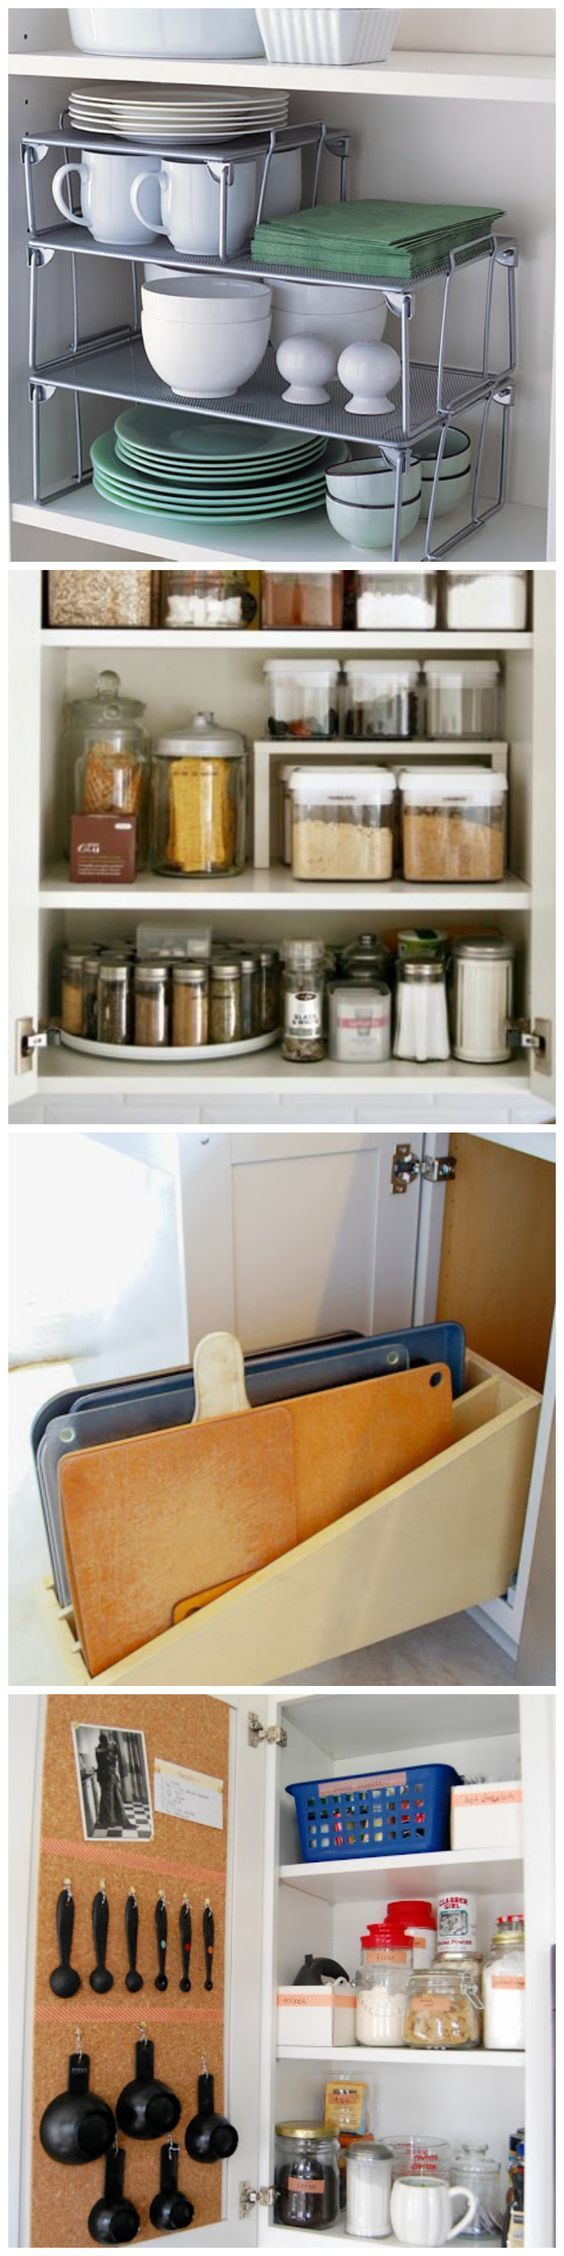 These 8 Easy Kitchen Organization Hacks are SO GOOD! I'm so happy I found this GREAT post! My kitchen is going to function so much better! These really are ingenious tips! So posting for later!: